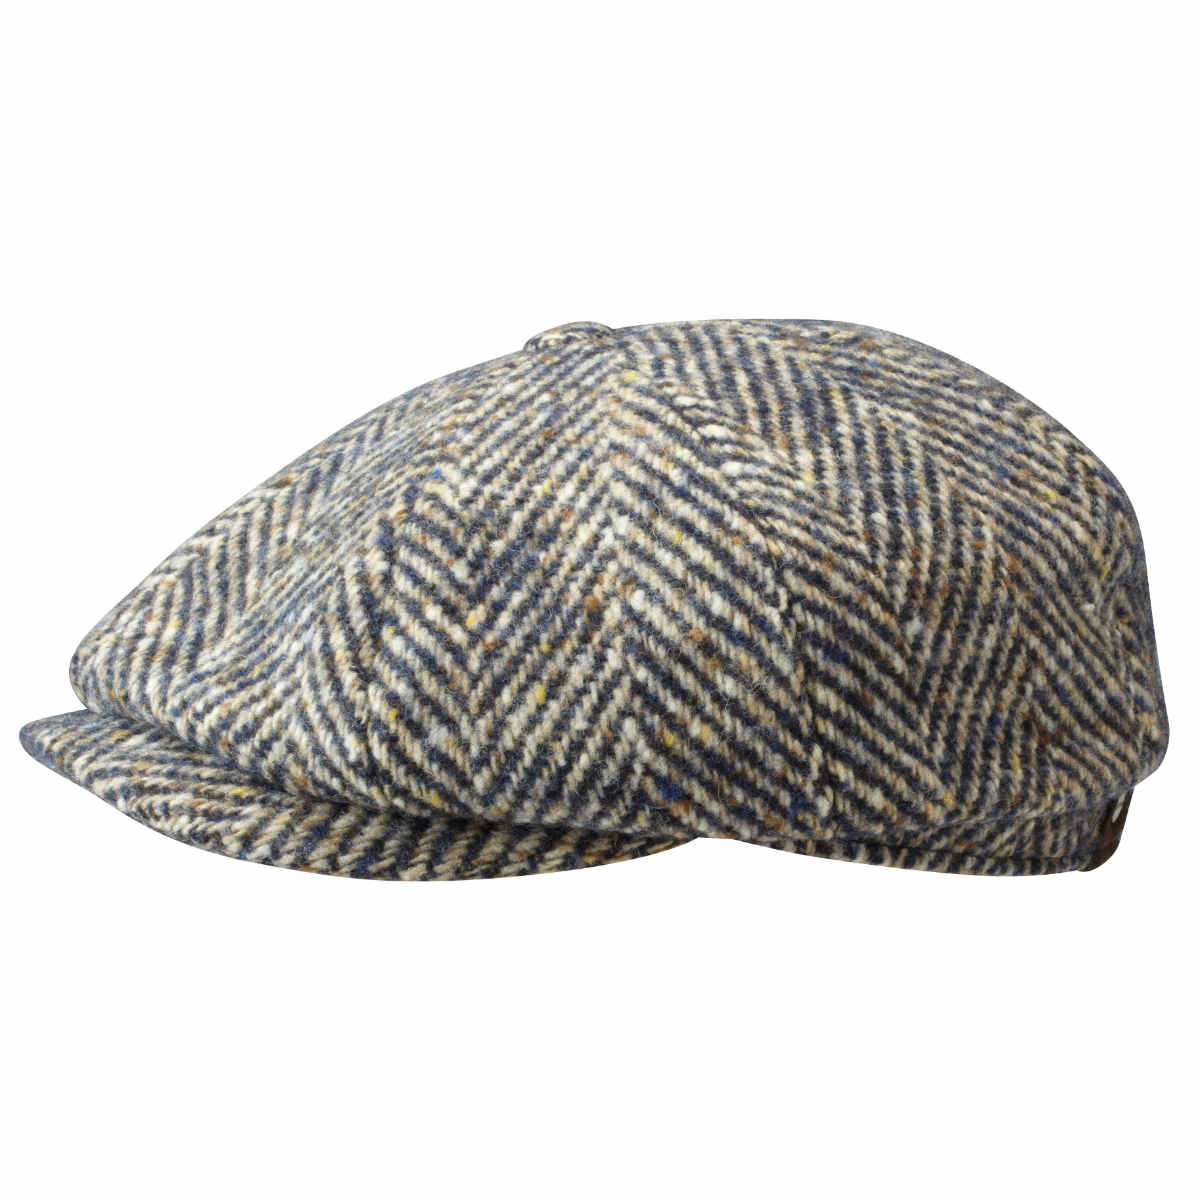 Donegal newspaperboy cap stetson